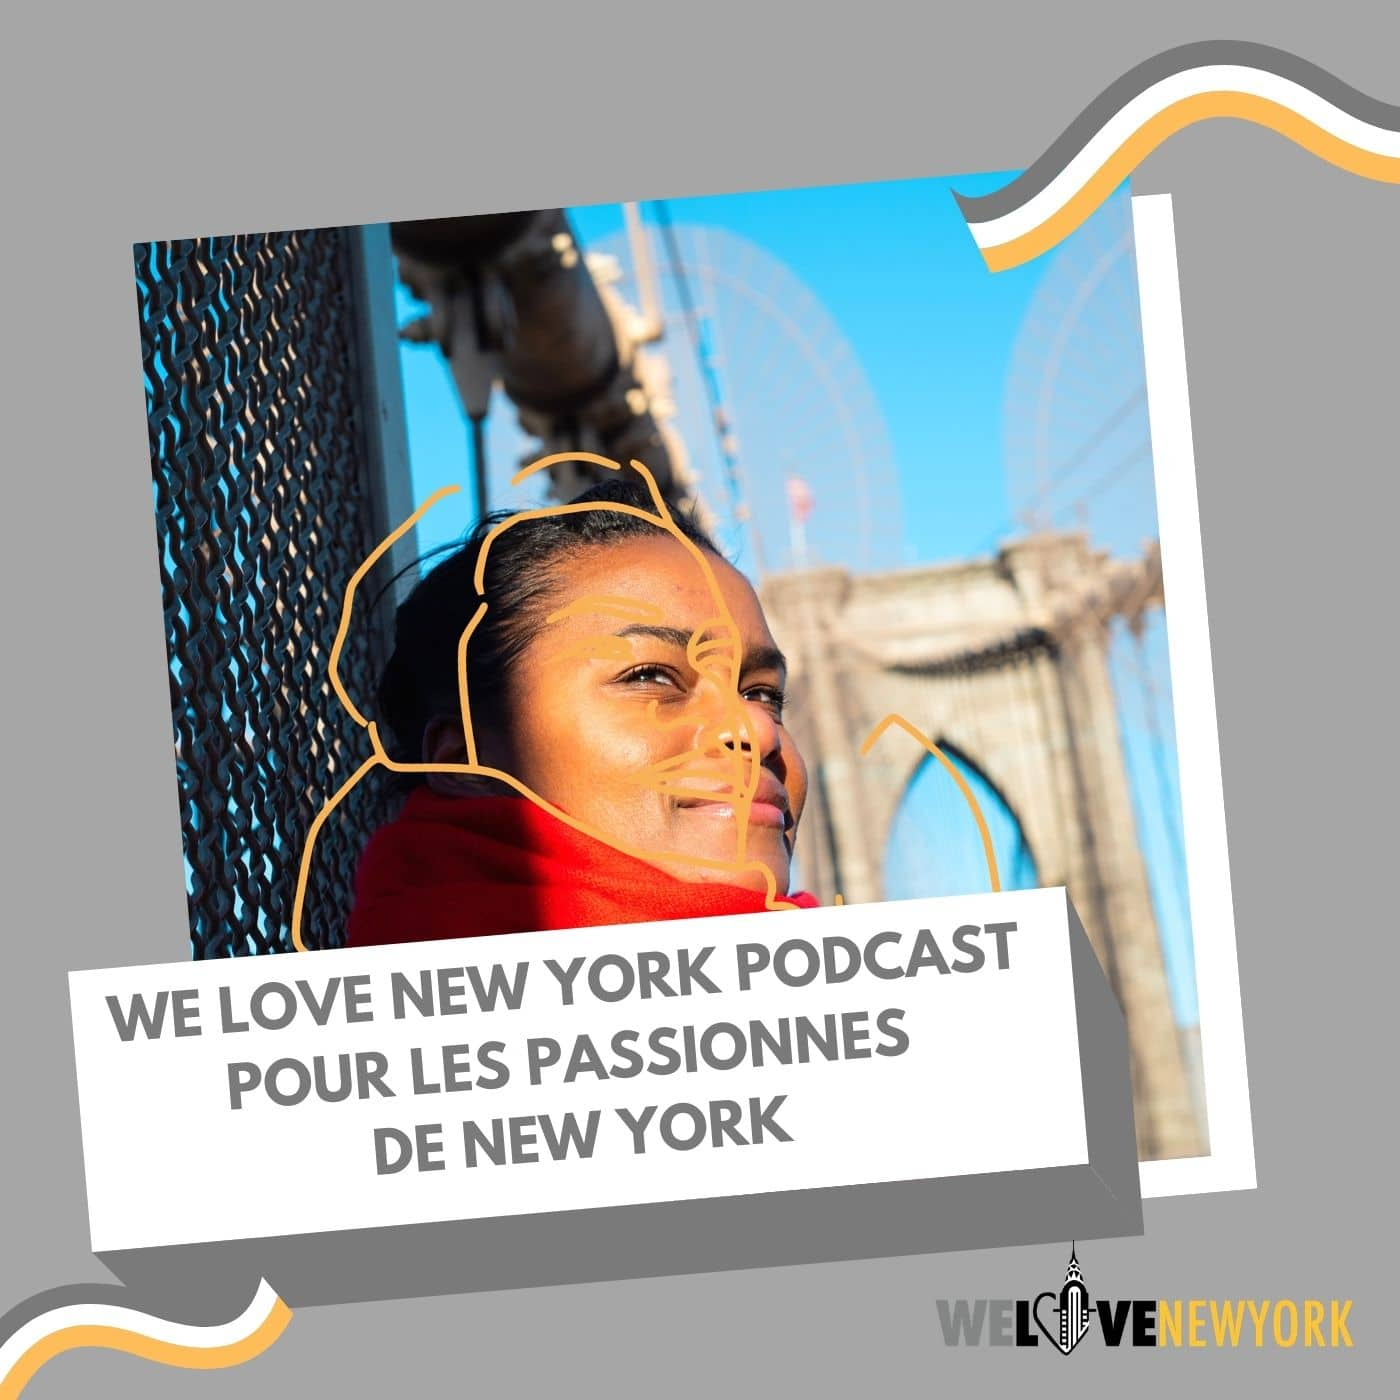 podcast de new york